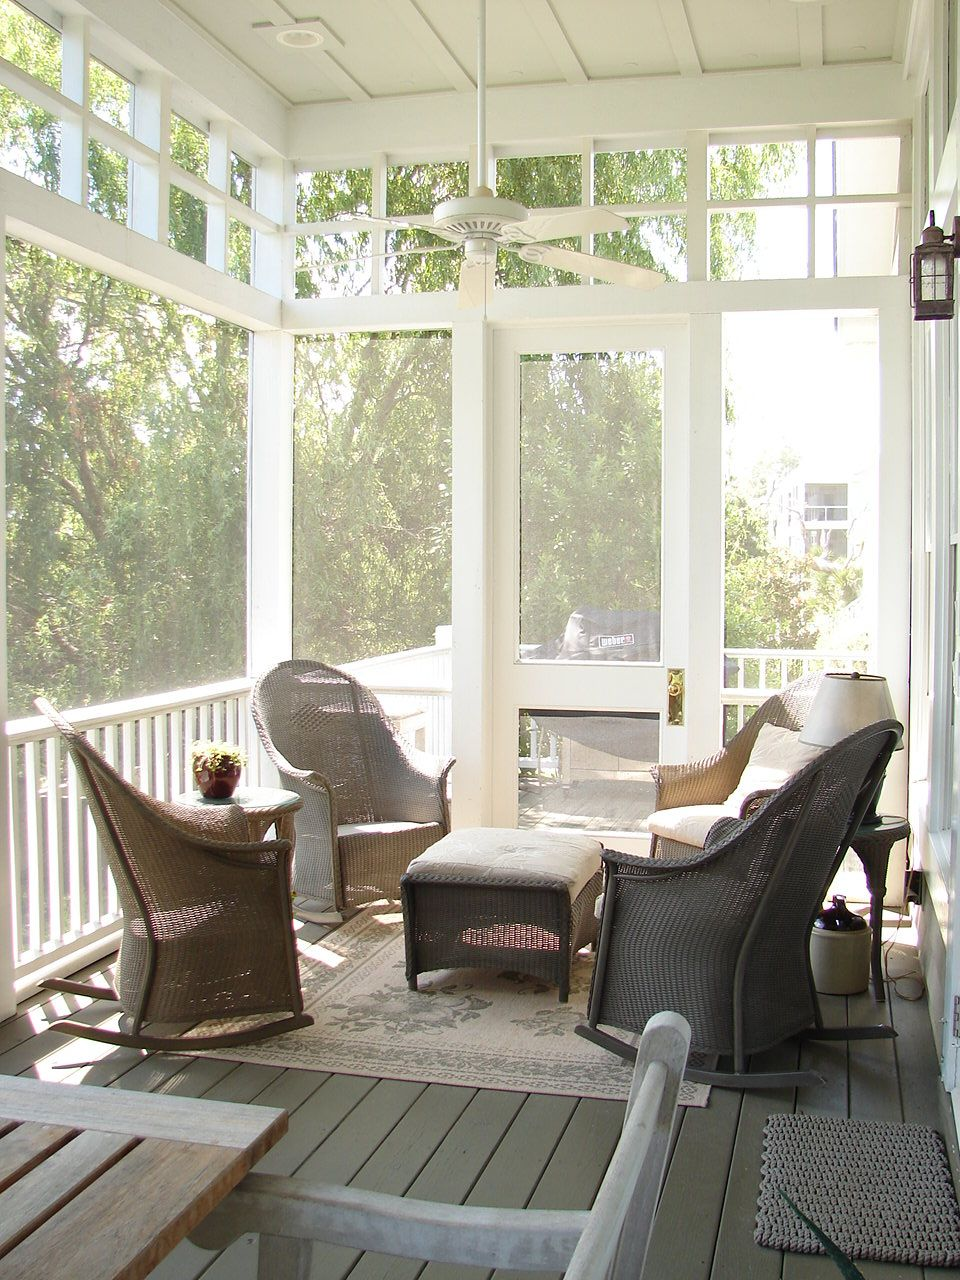 c0014 allisonramseyarchitects dream home pinterest porch rh pinterest com